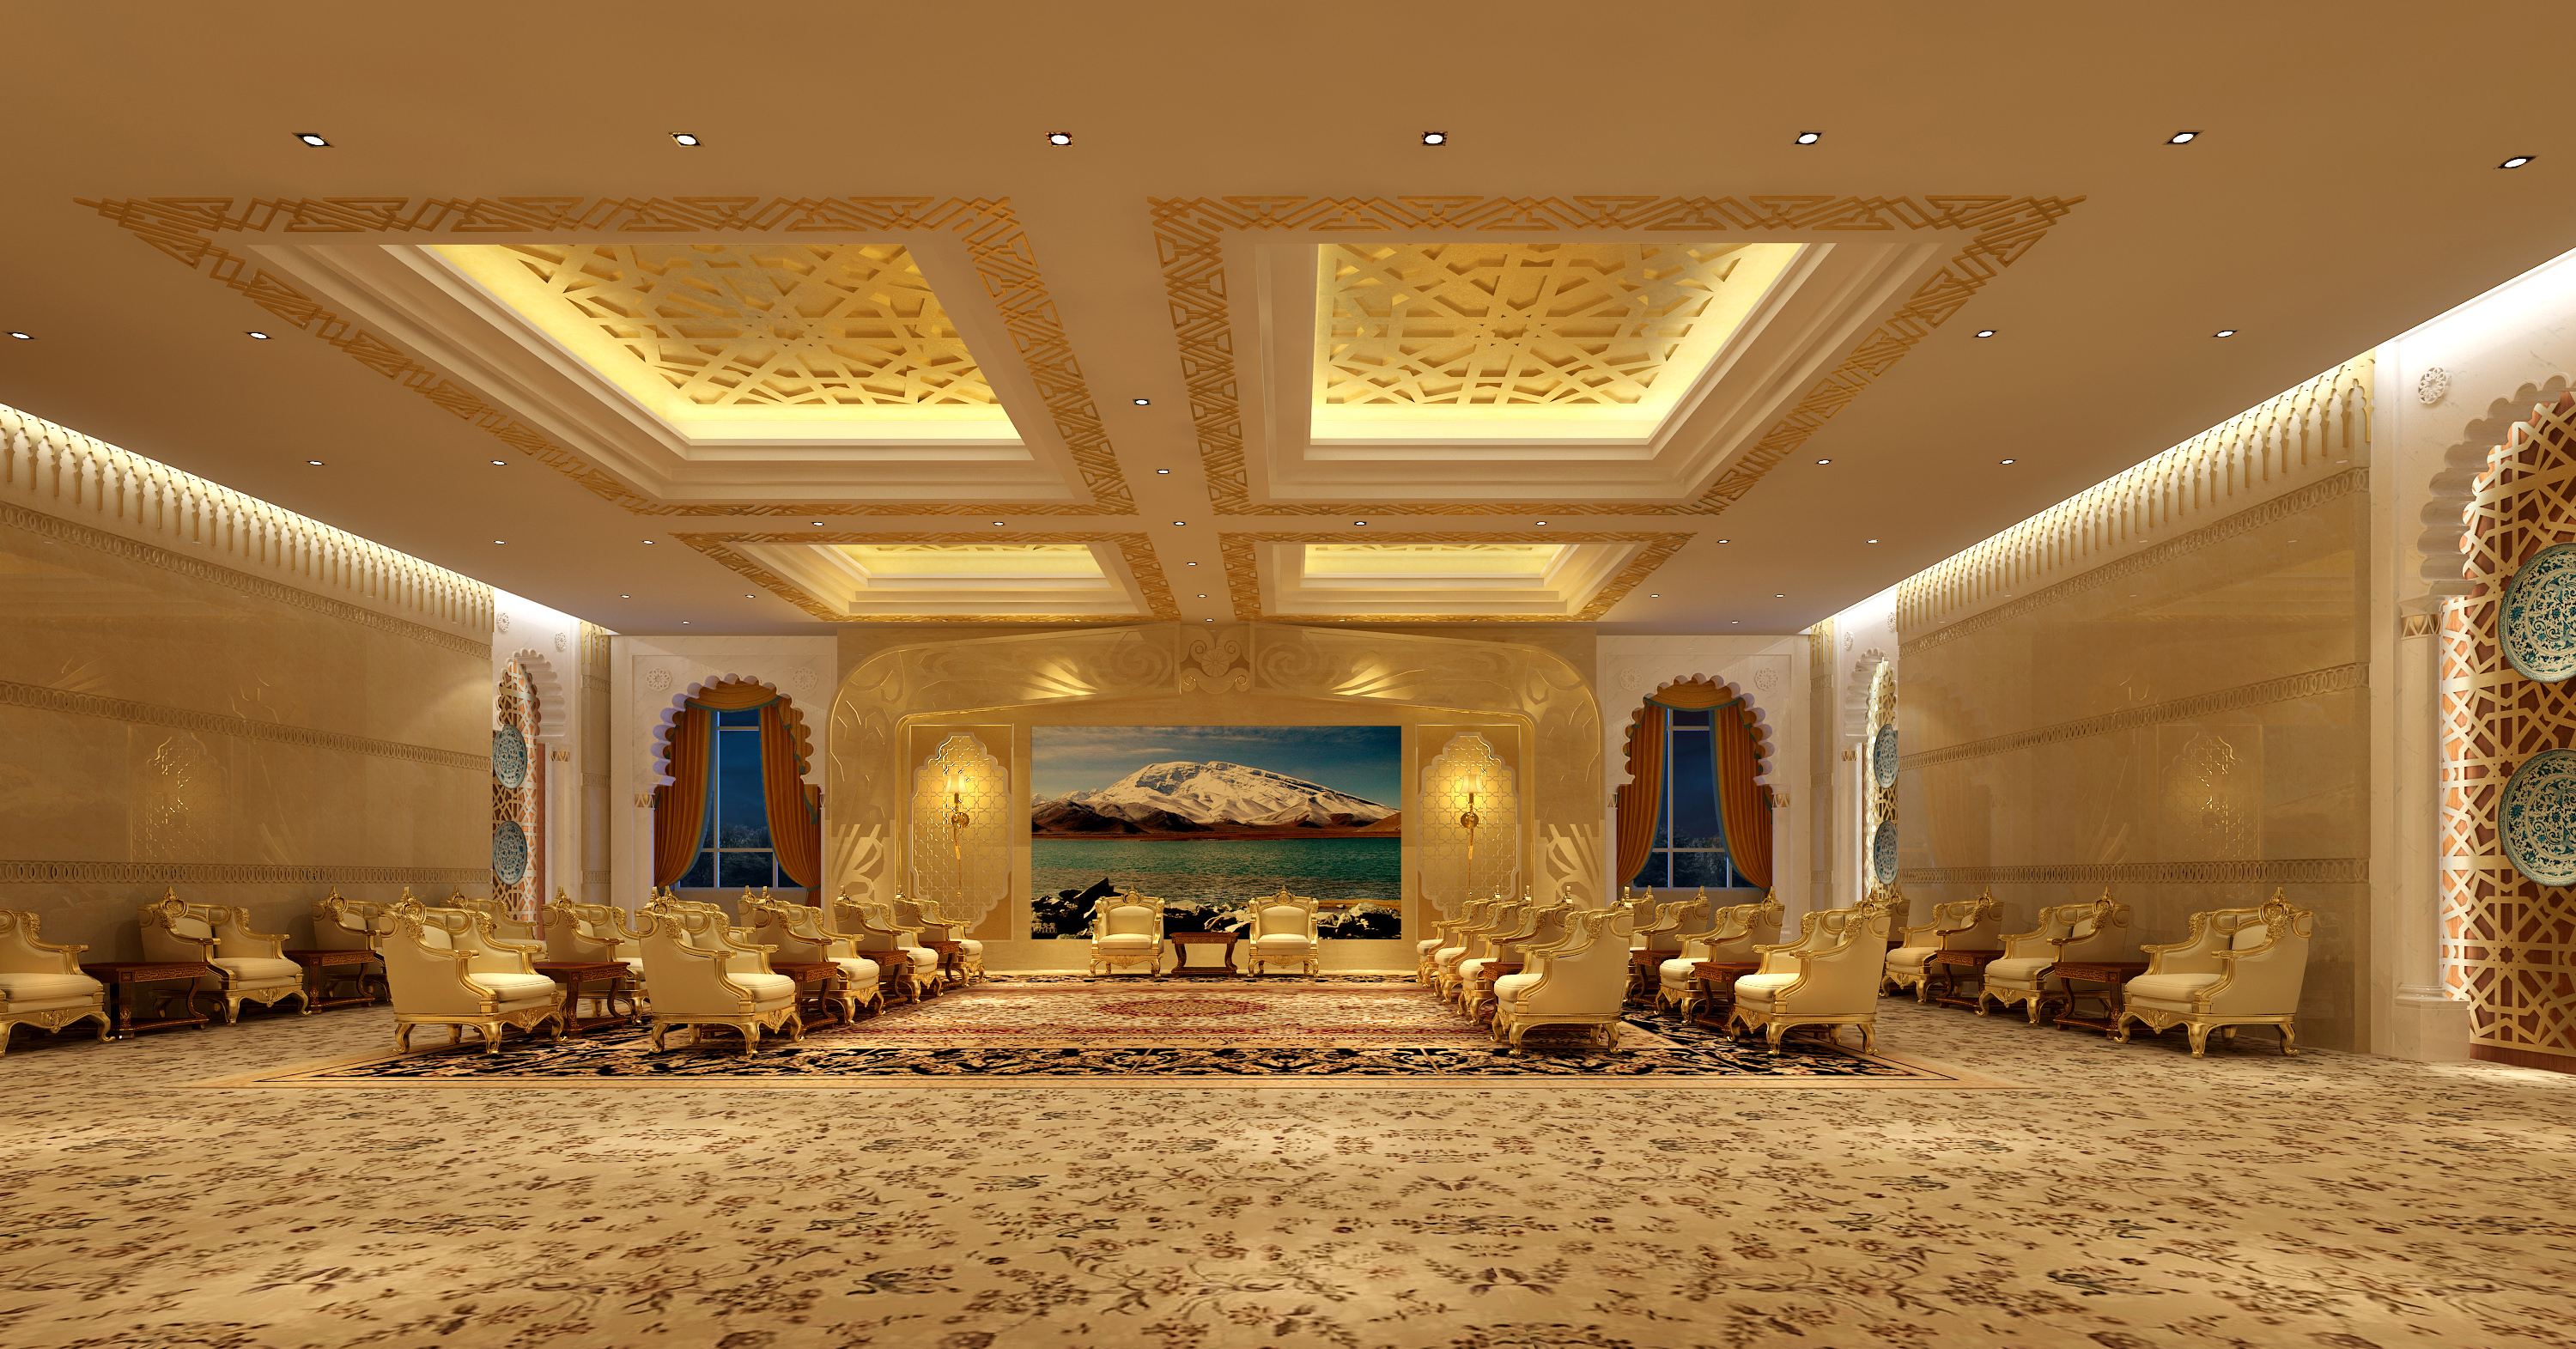 Antechamber with Luxury Carpet and Ceiling 3D model MAX